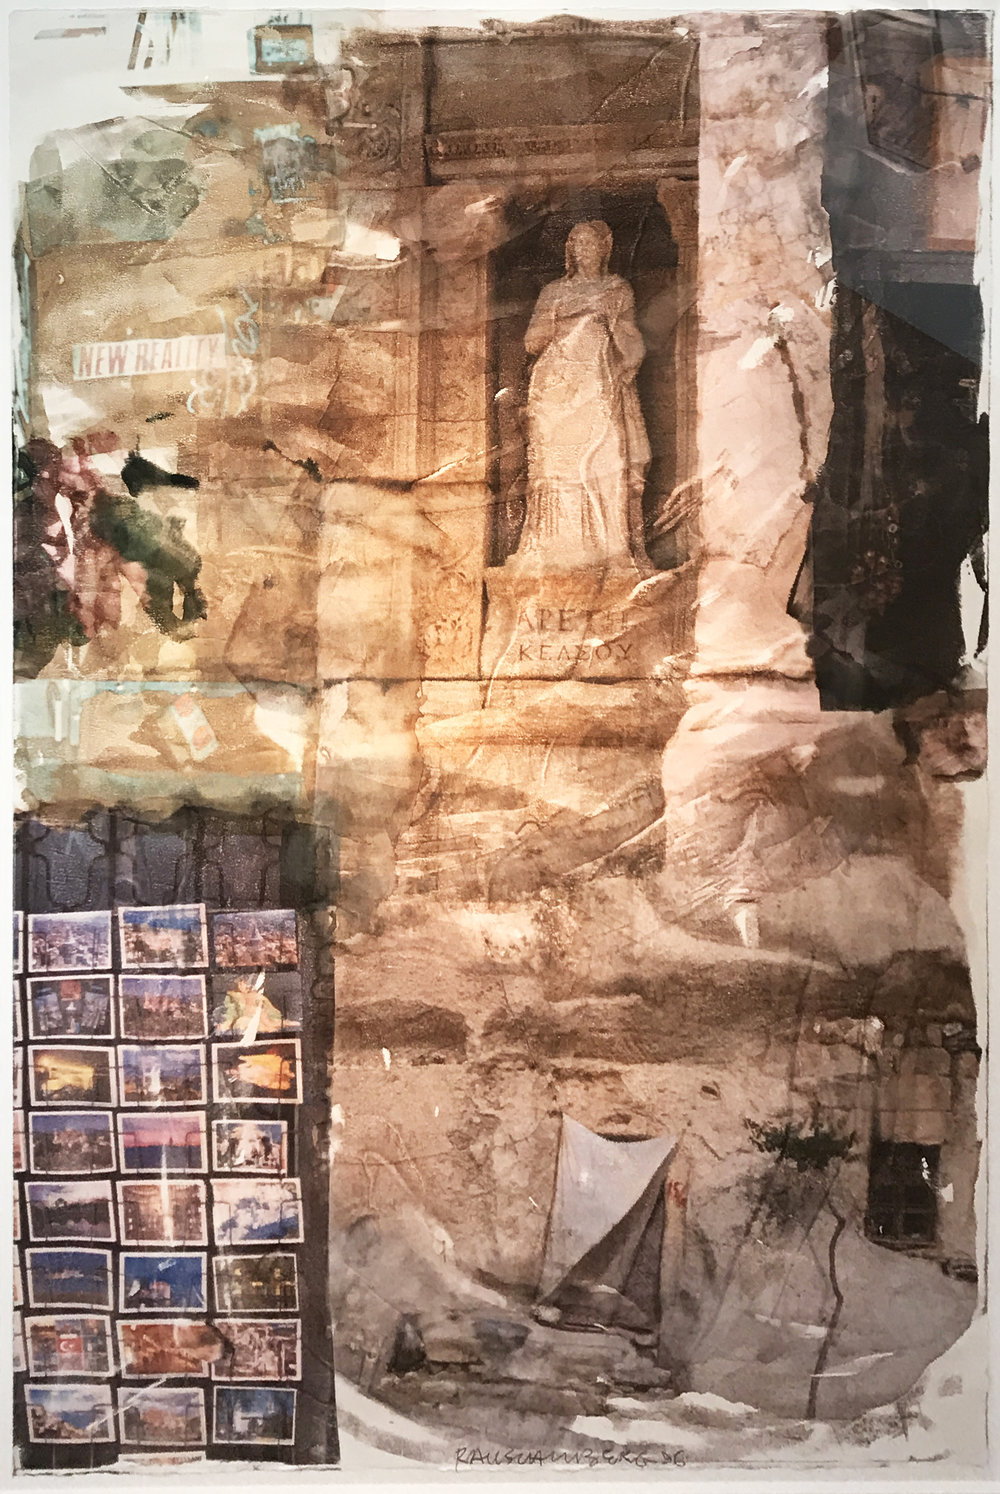 Robert Rauschenberg. New Reality (Anagrams), 1996. 96.100.